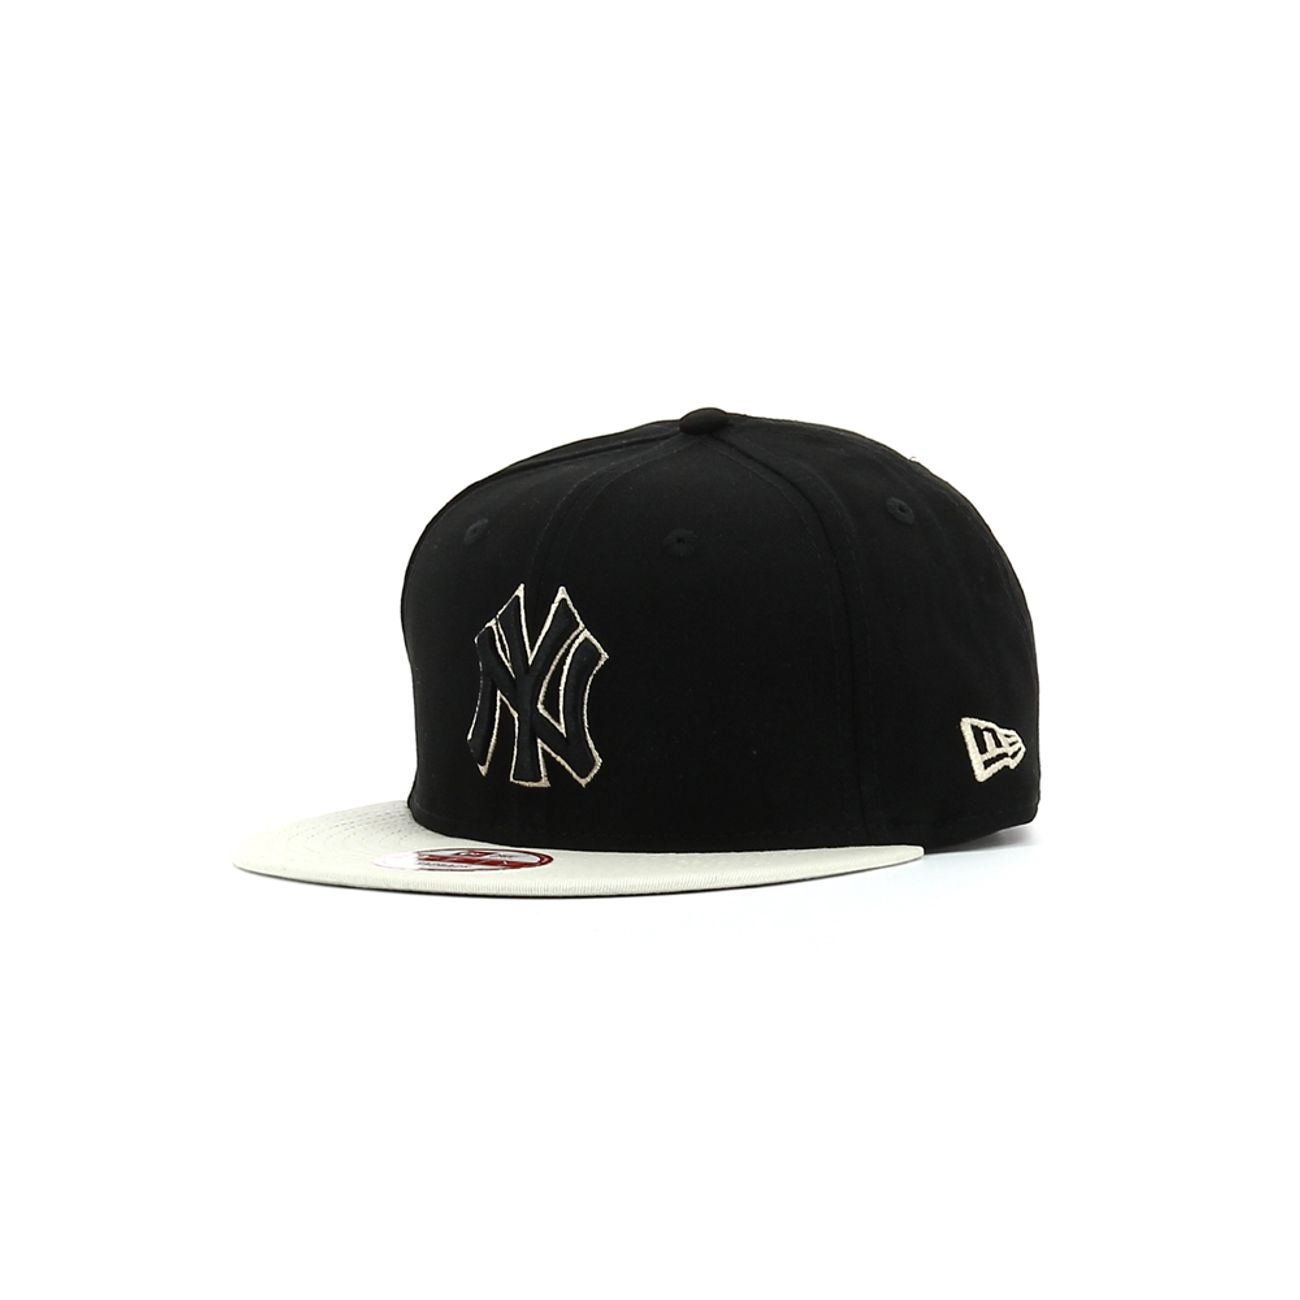 Casquette New Era 9fifty Homme York ModeLifestyle Yankees Mlb lK3T1J5uFc